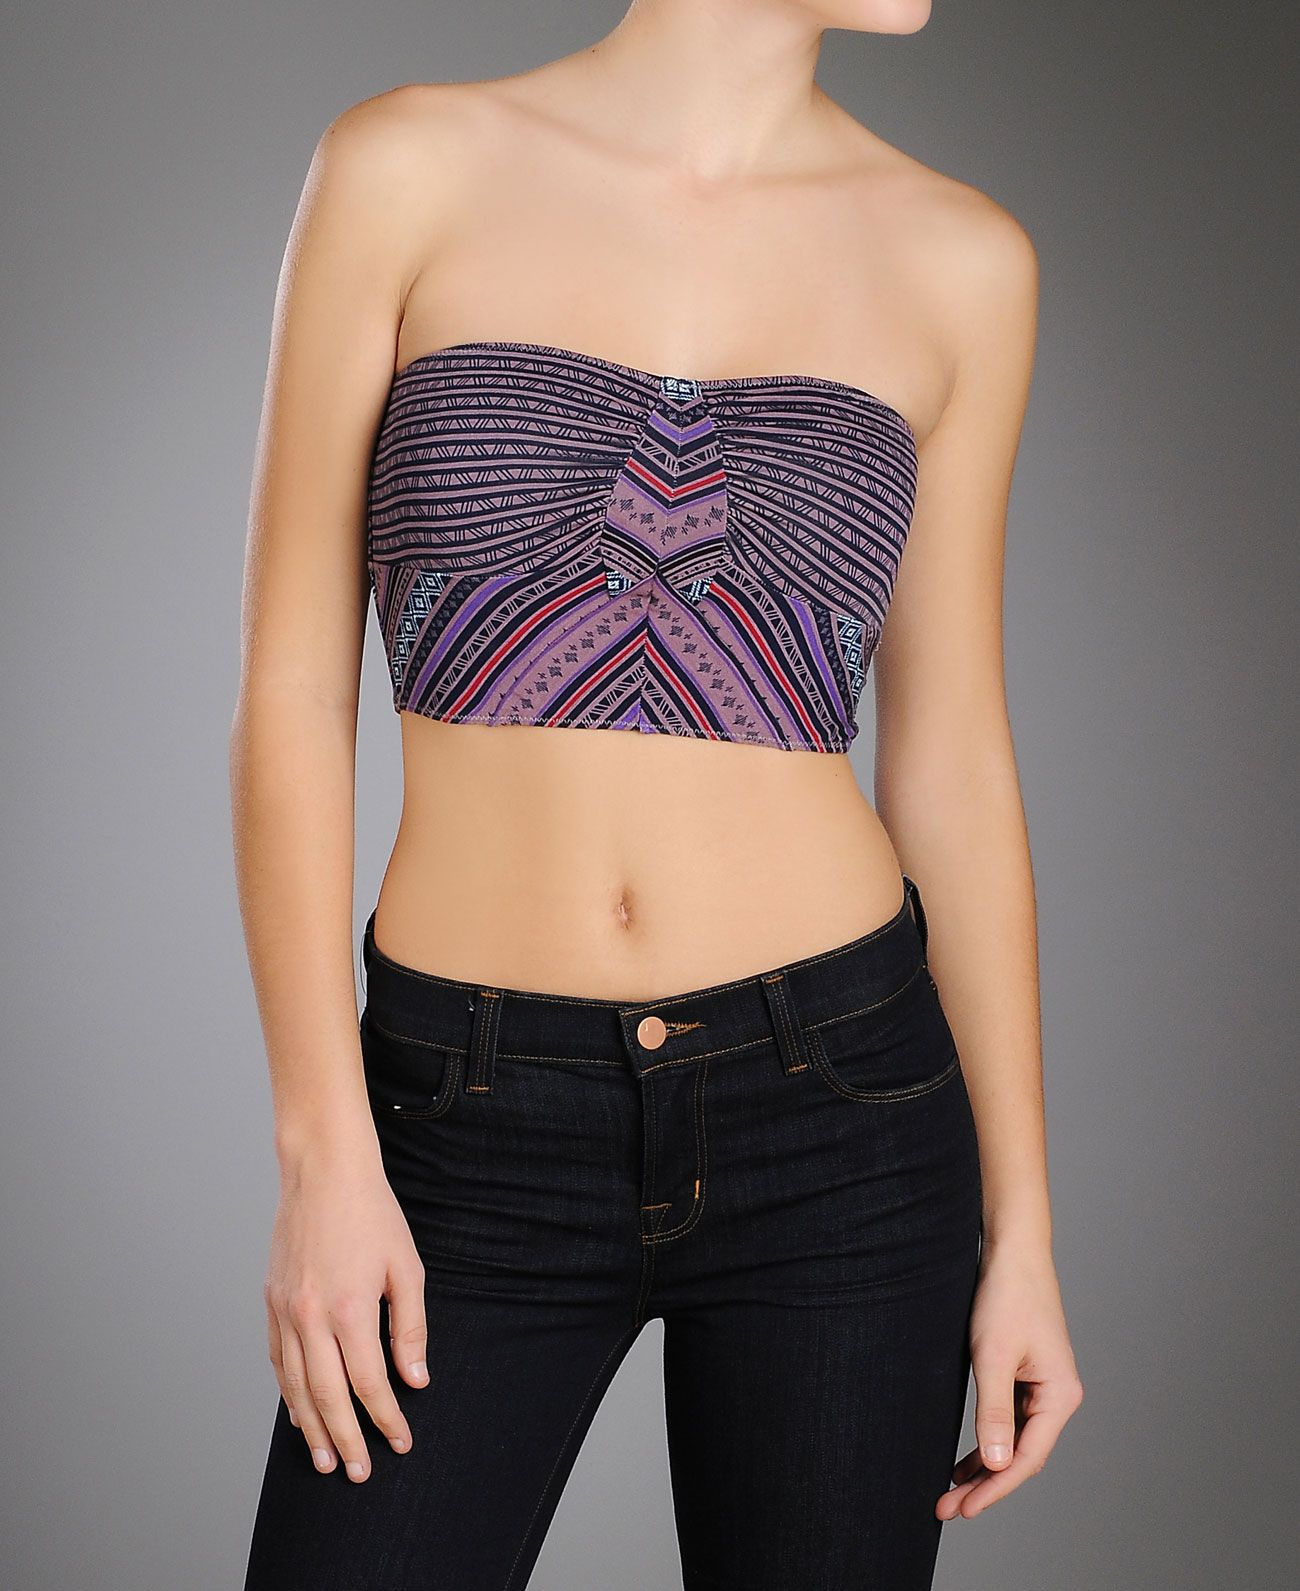 Oh my, need this #FreePeople #Tribal Print Bustier! So cute!